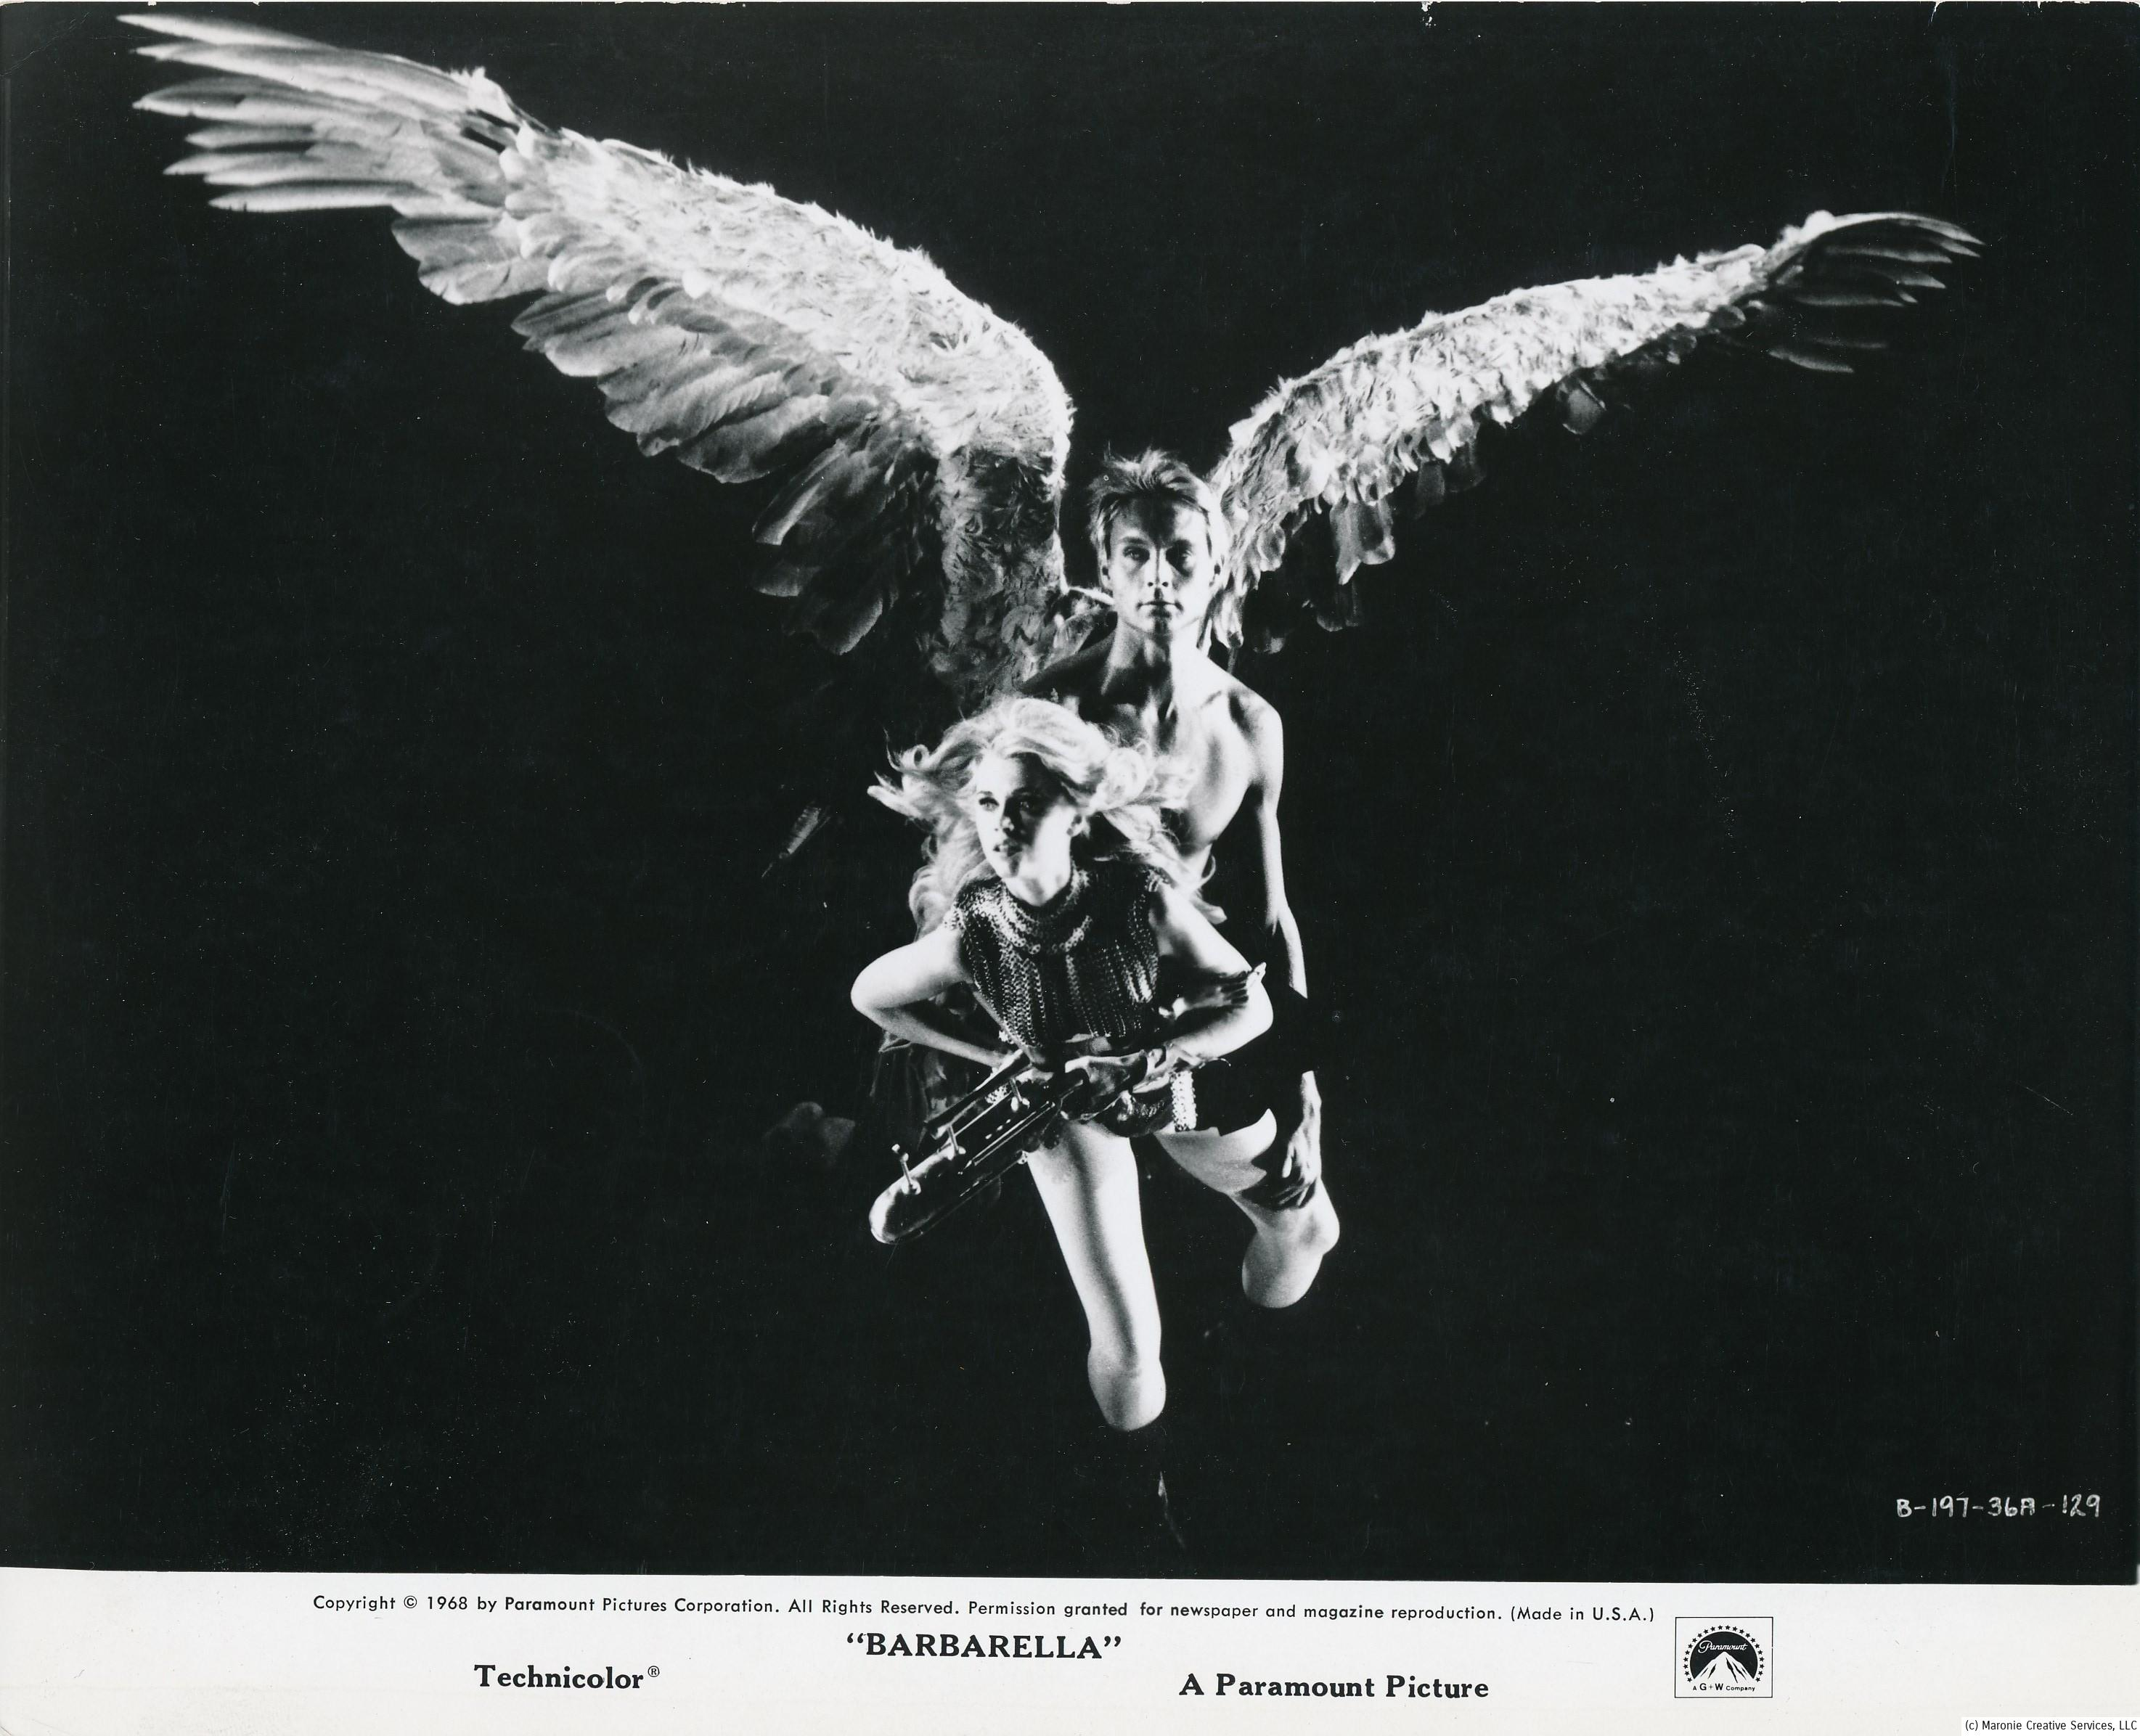 Not technically a monster, this interesting photo from 1968's Barbarella features the late John Phillip Law as a winged wonder. Of course, Jane Fonda from this era is always interesting to look at. (c) Paramount